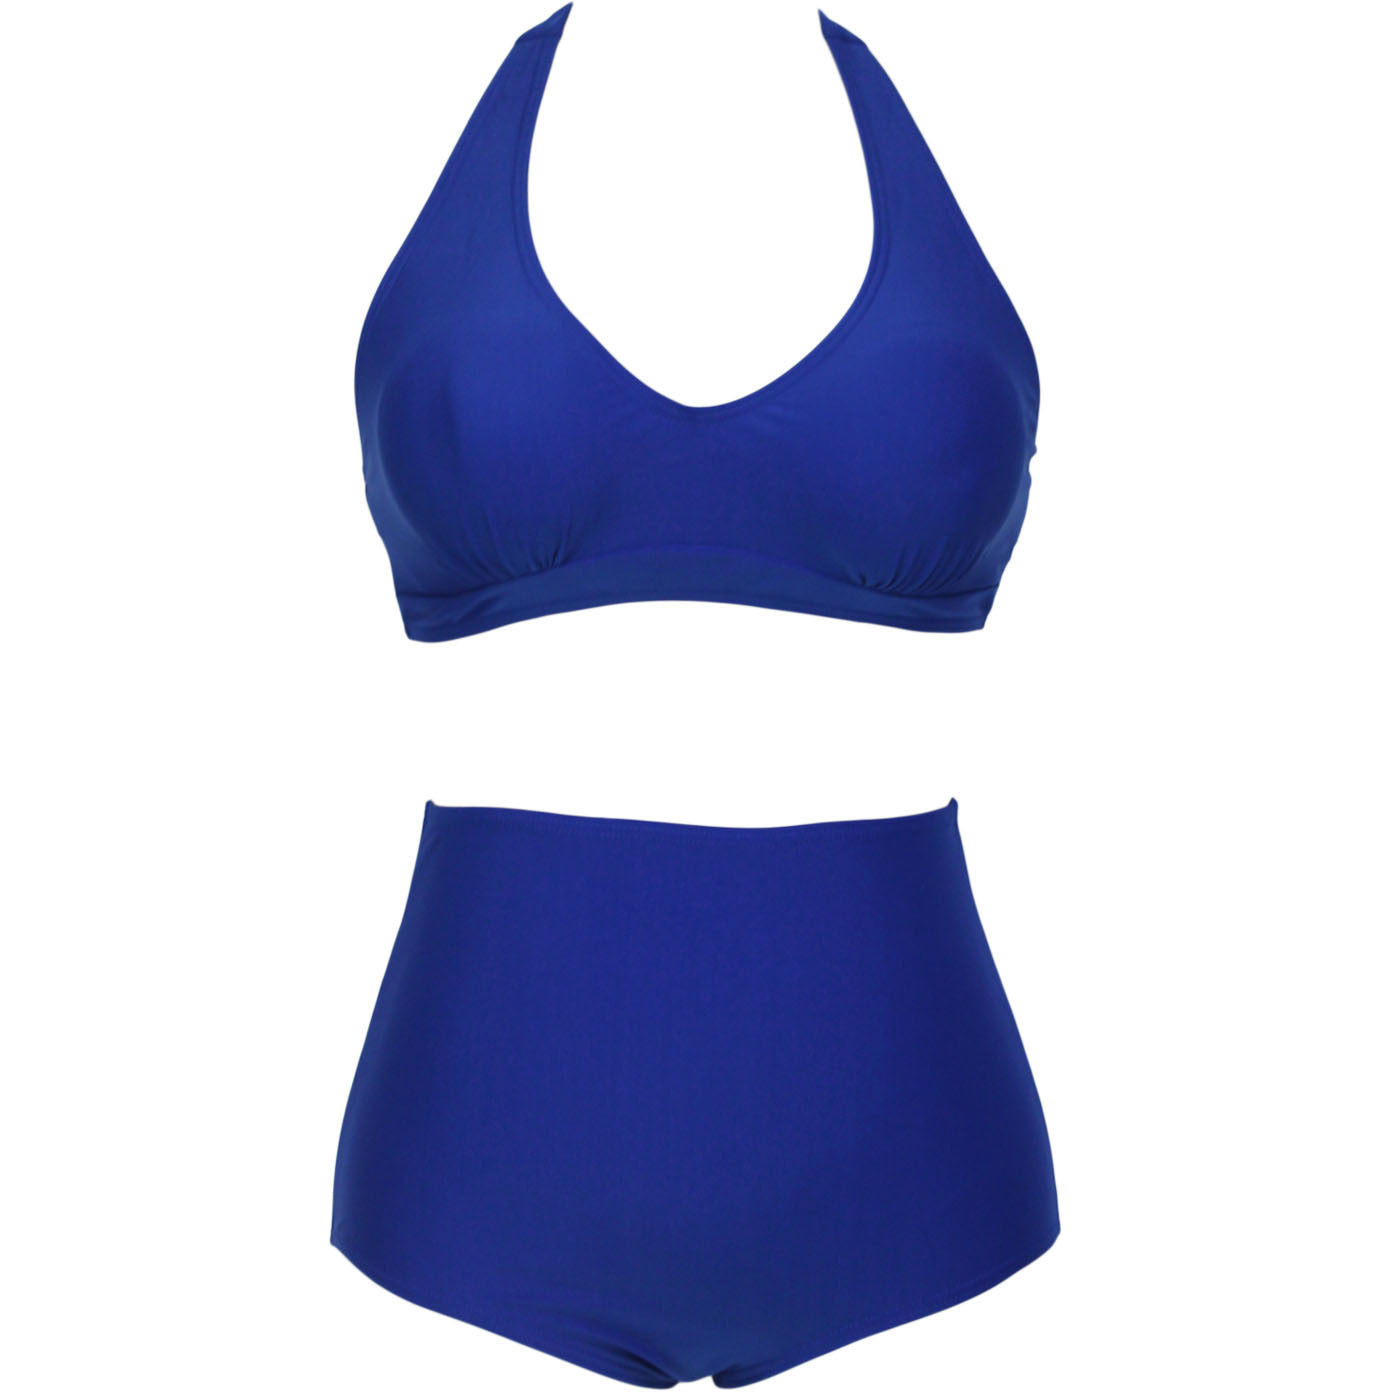 Blue High-Waisted Plus Size Bikini Swimsuit LAVELIQ - LAVELIQ - 2